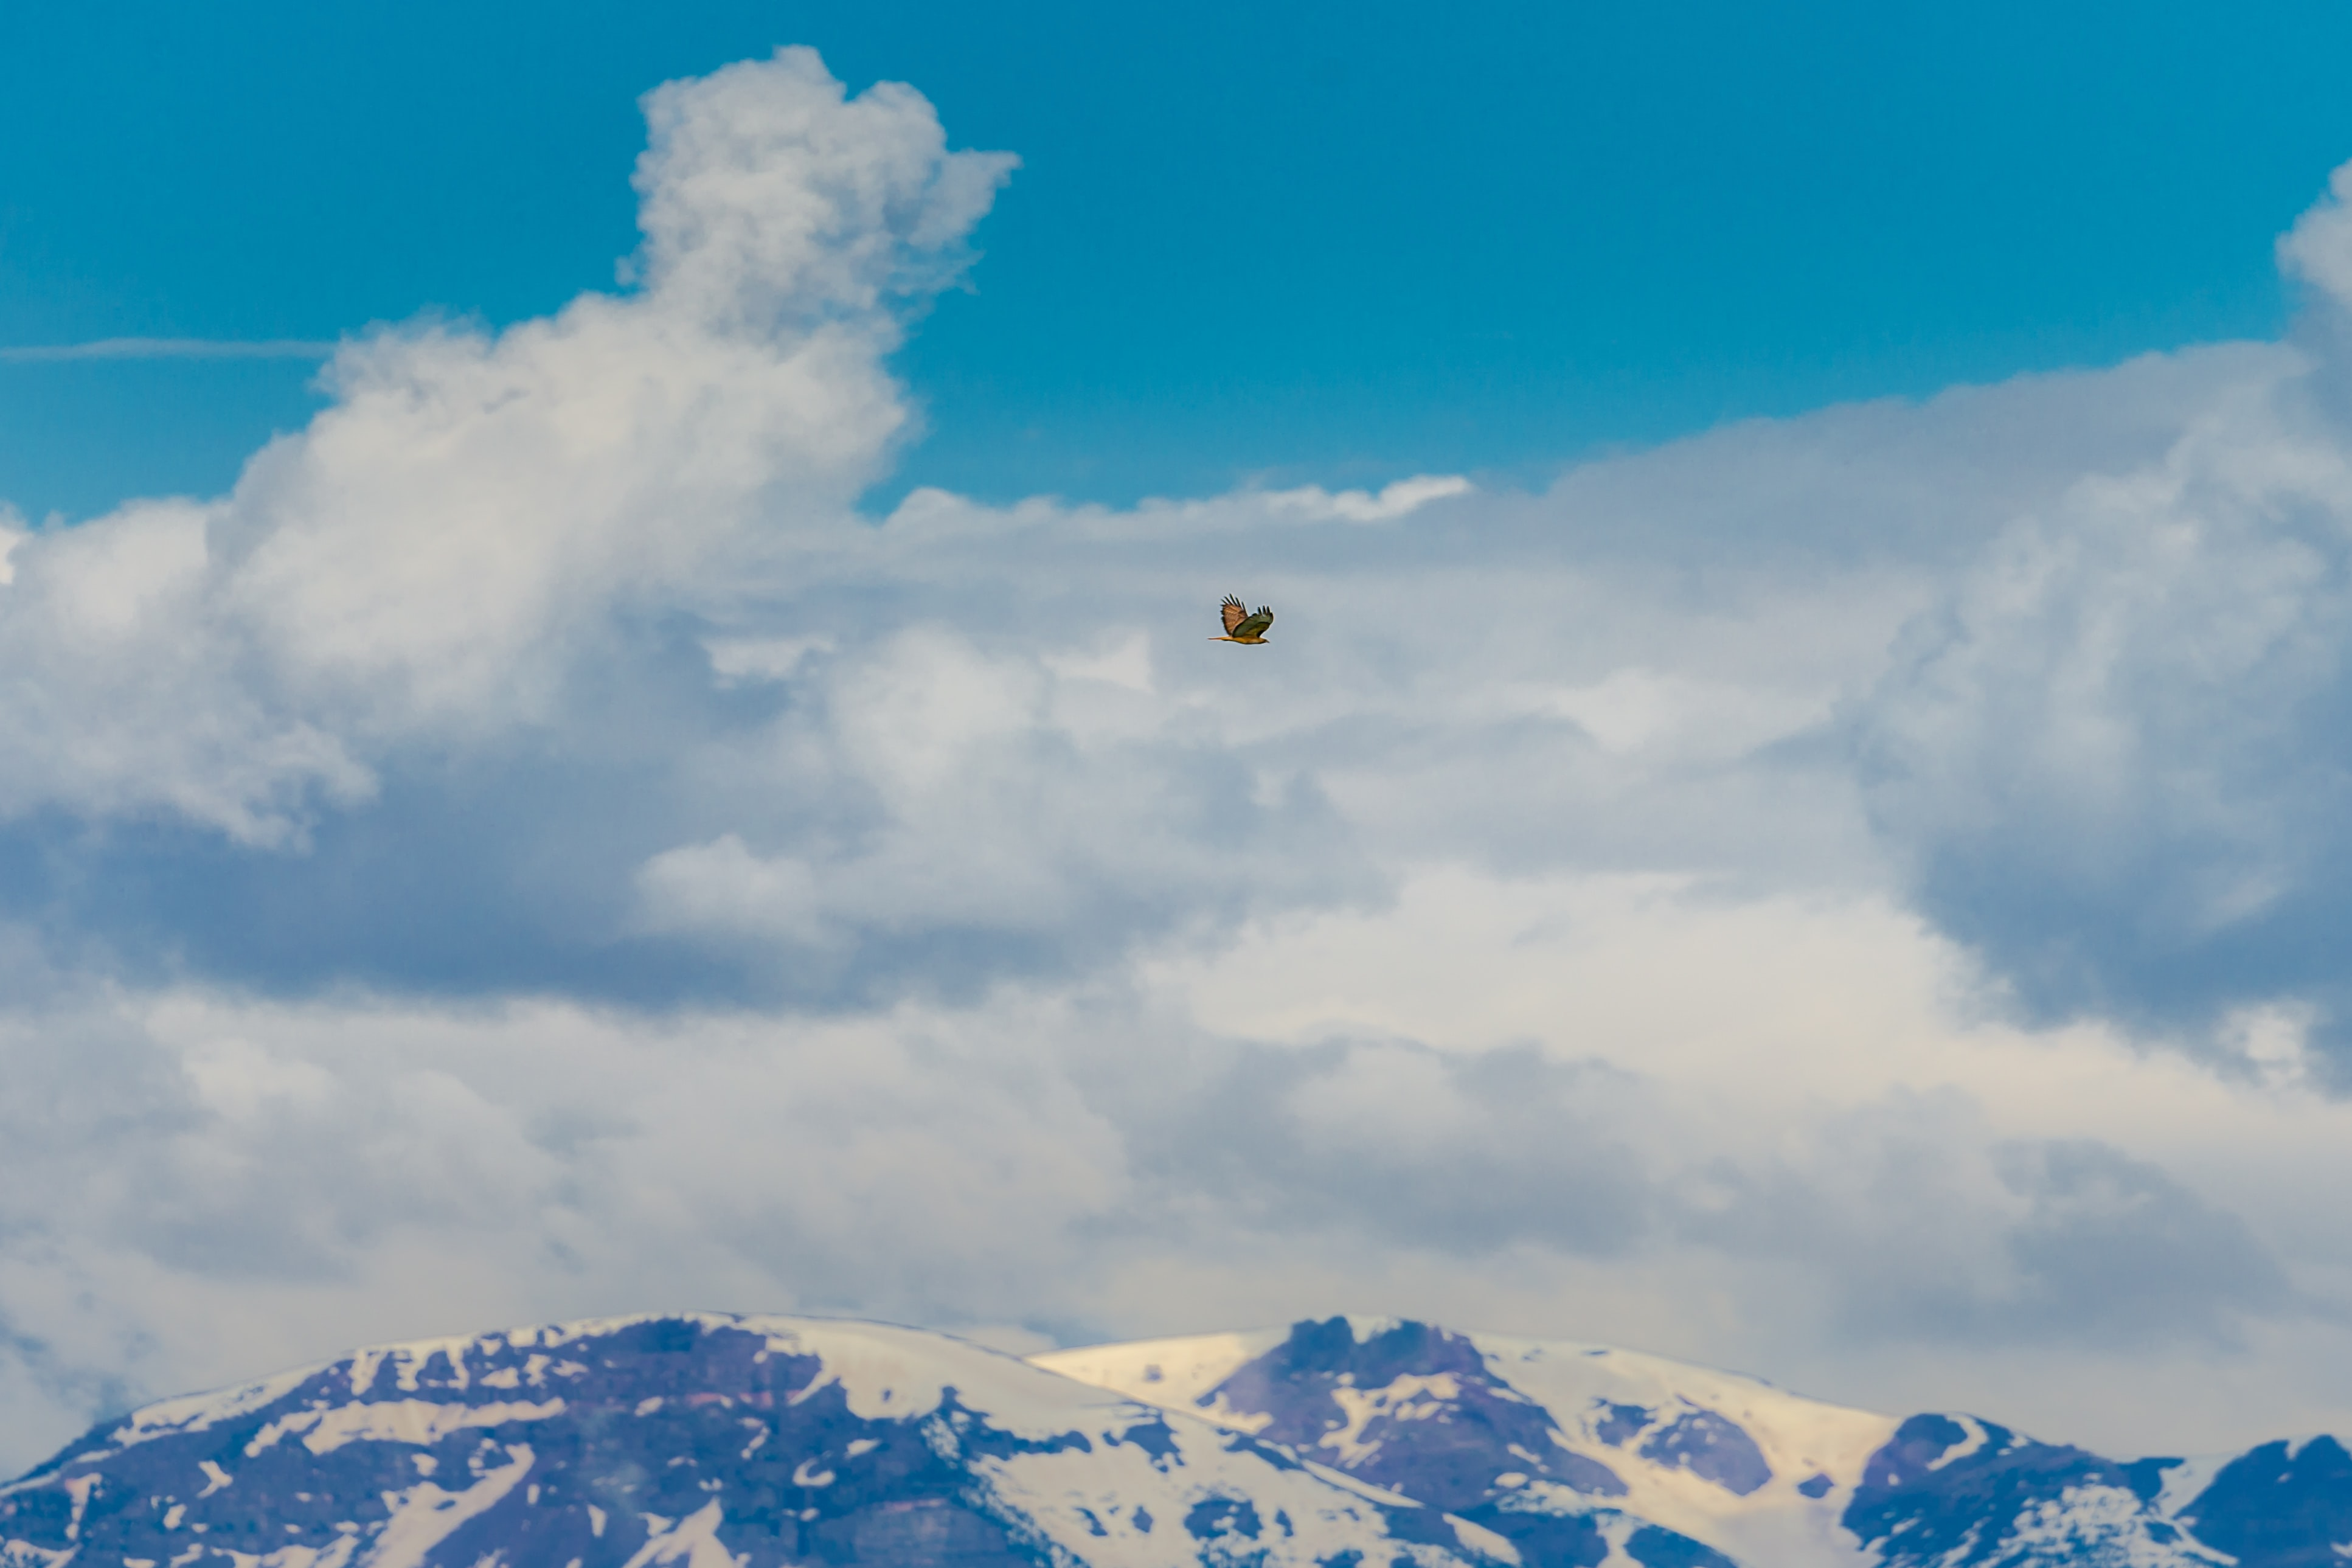 brown and black bird flying over snow-covered mountains under cloudy sky